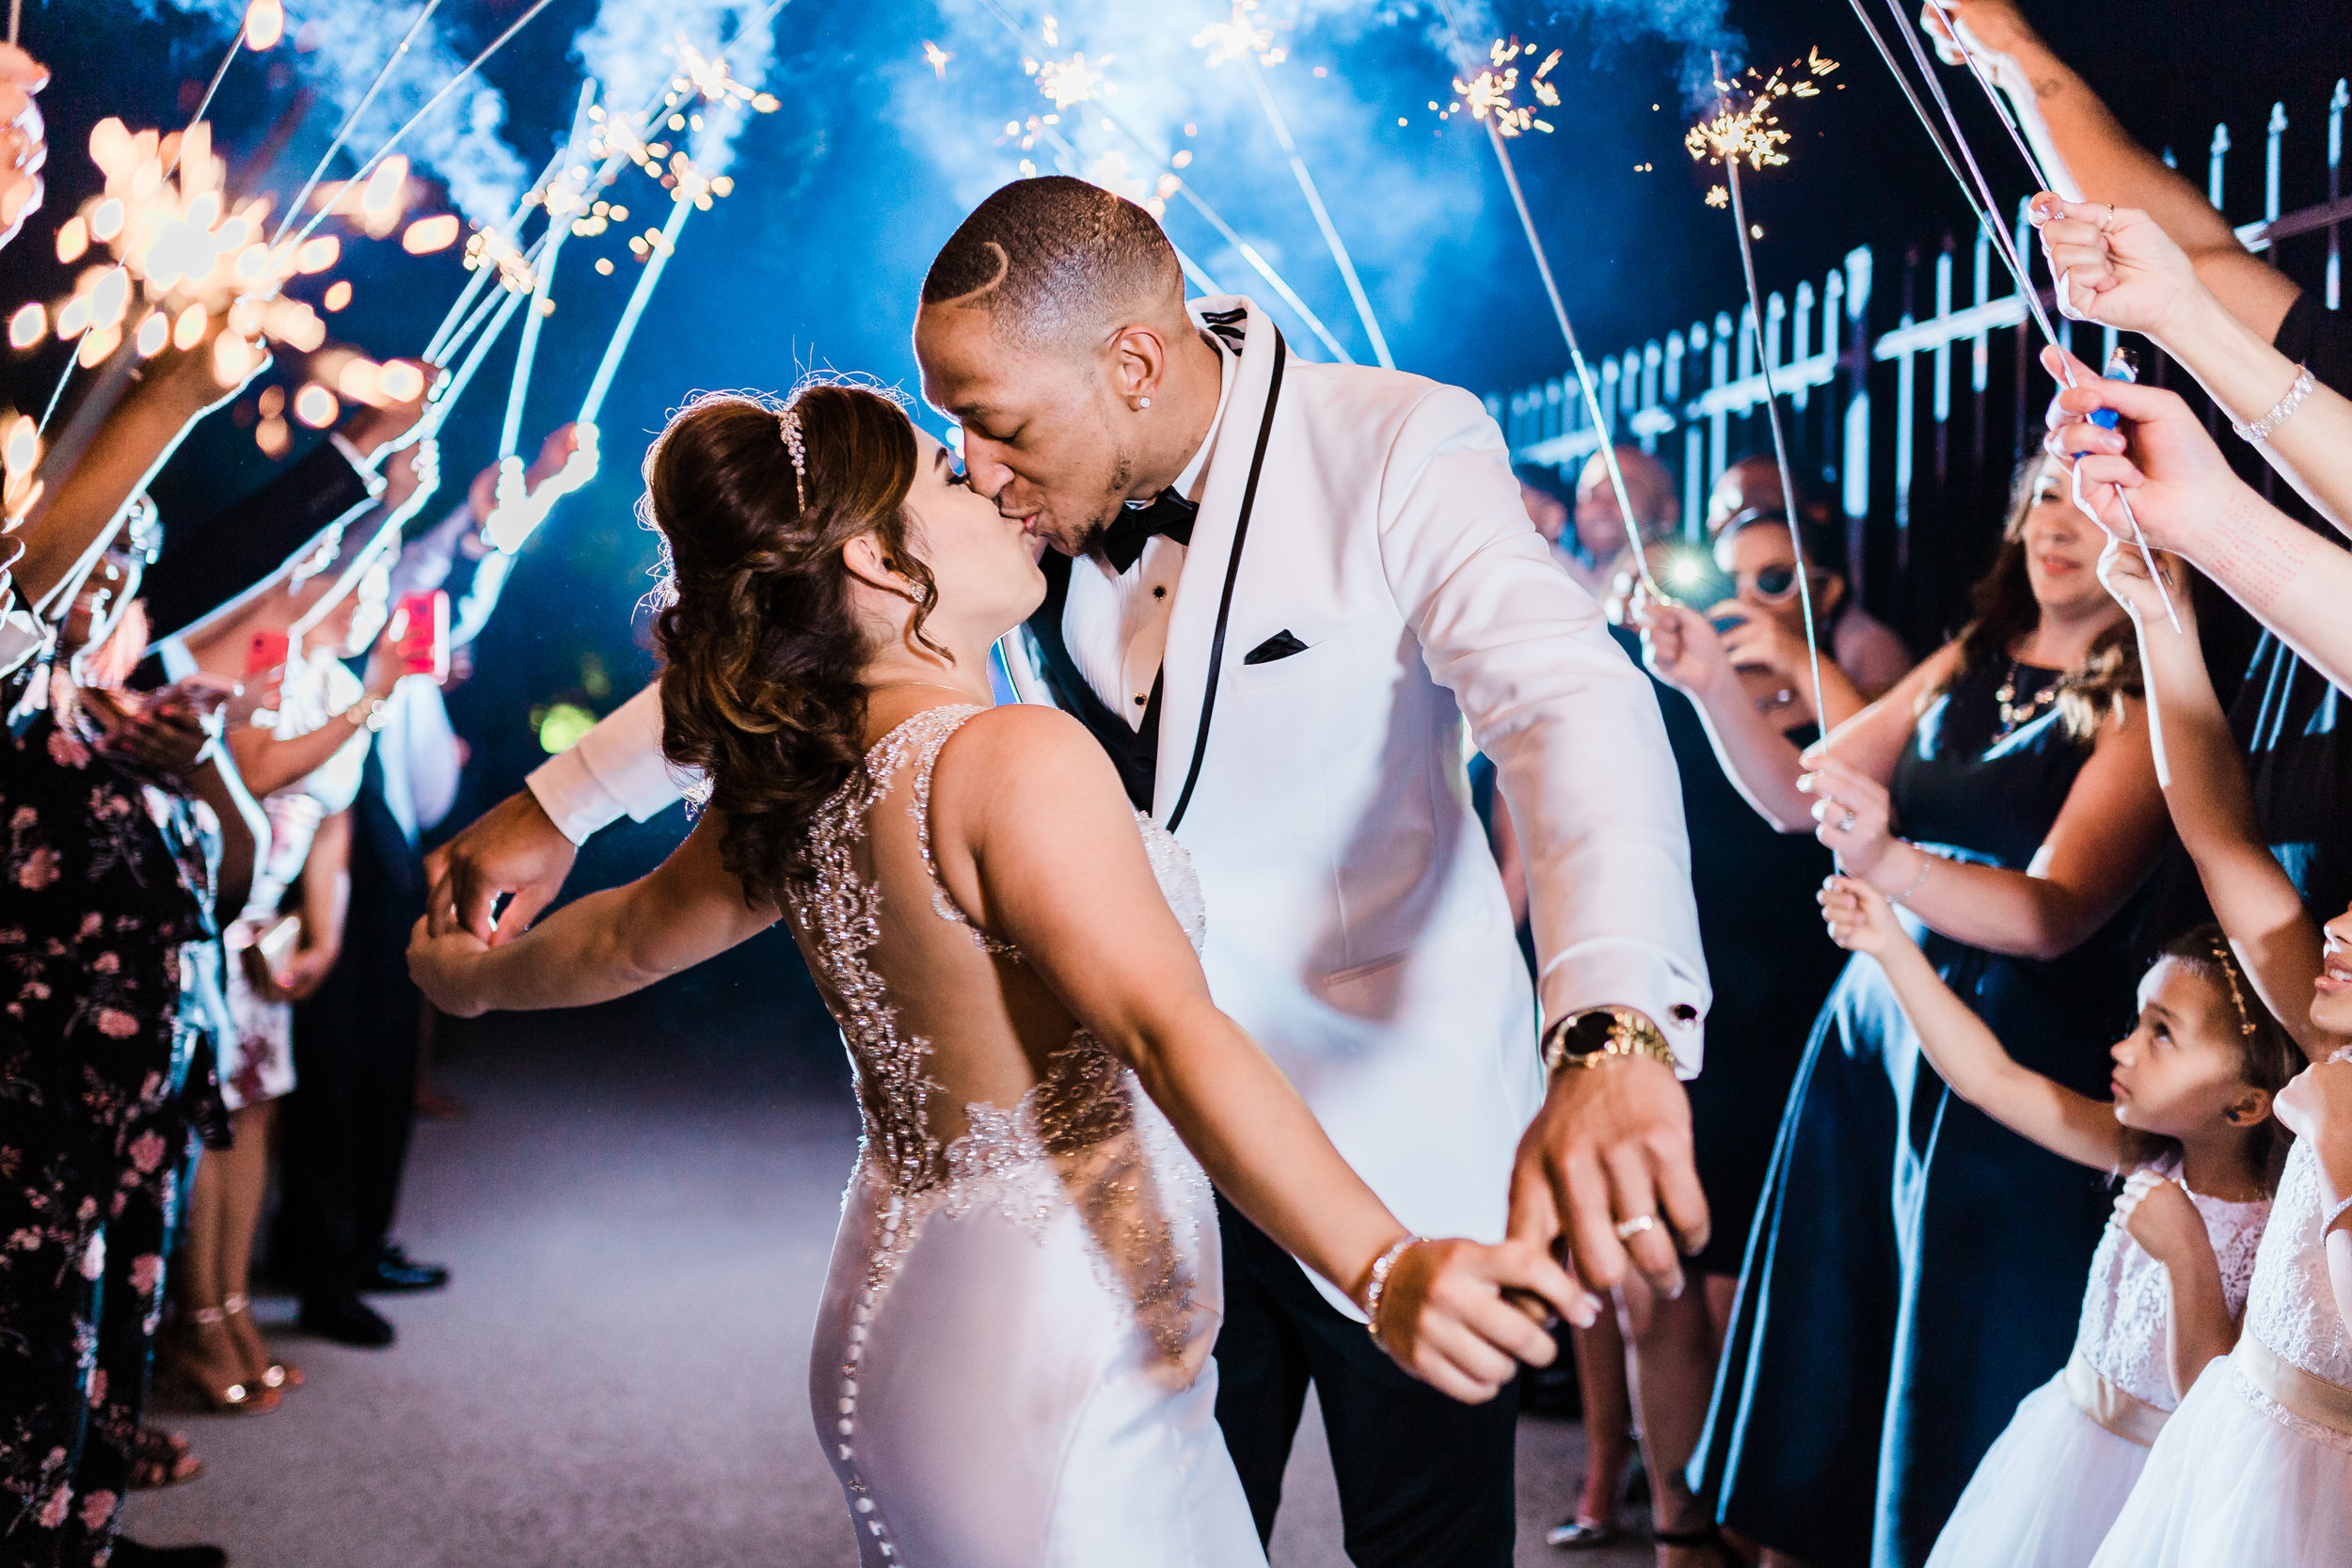 bride and groom kiss during grand exit - sparkler exit - maryland wedding photographer and cinematographer